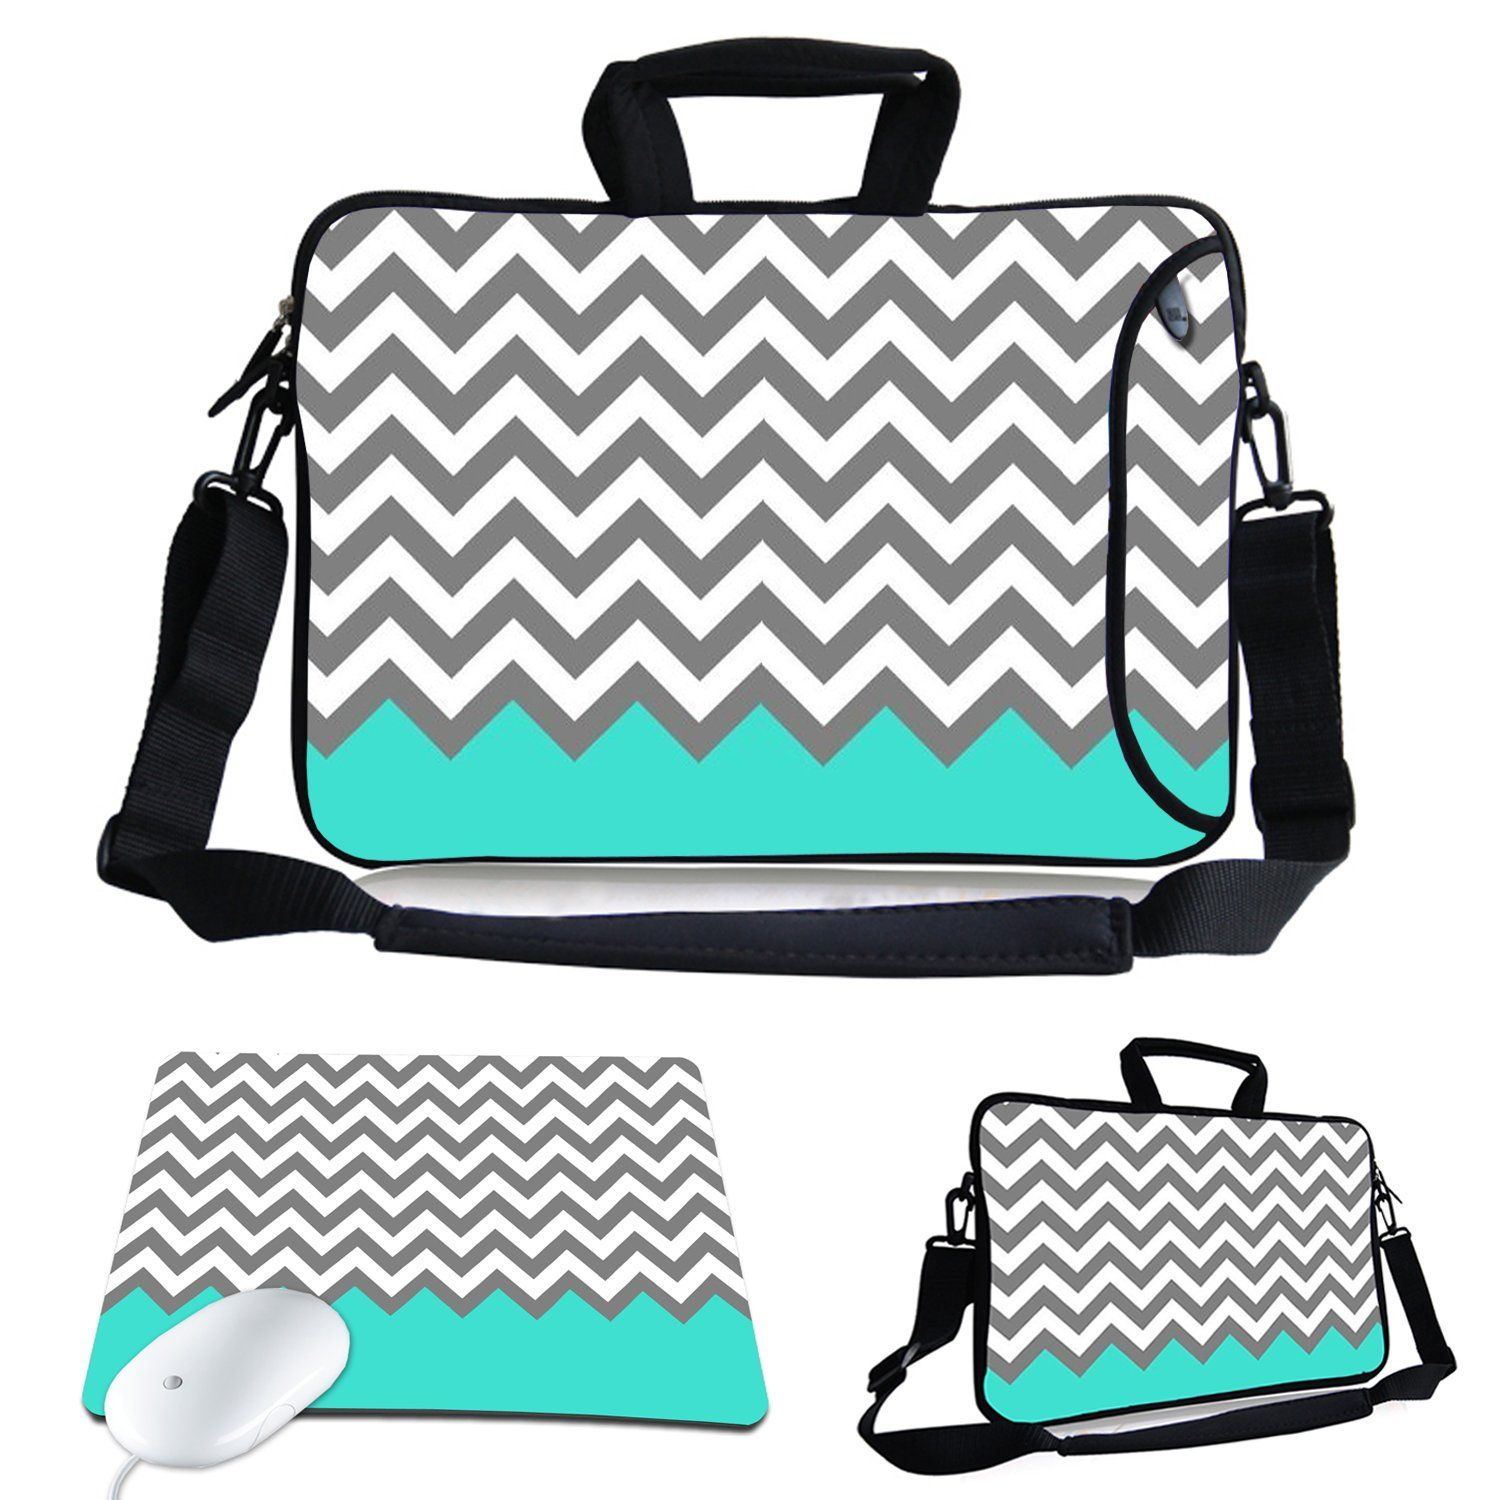 Kitron Tm 13 Inch Cute Colorful Cross Stripe Design Waterproof Woolen Felt Laptop Softcase Sleeve Macbook Air Pro Retina Ipad Mini Up To Neoprene Case Bag With Extra Side Pocket Soft Carrying Handle Removable